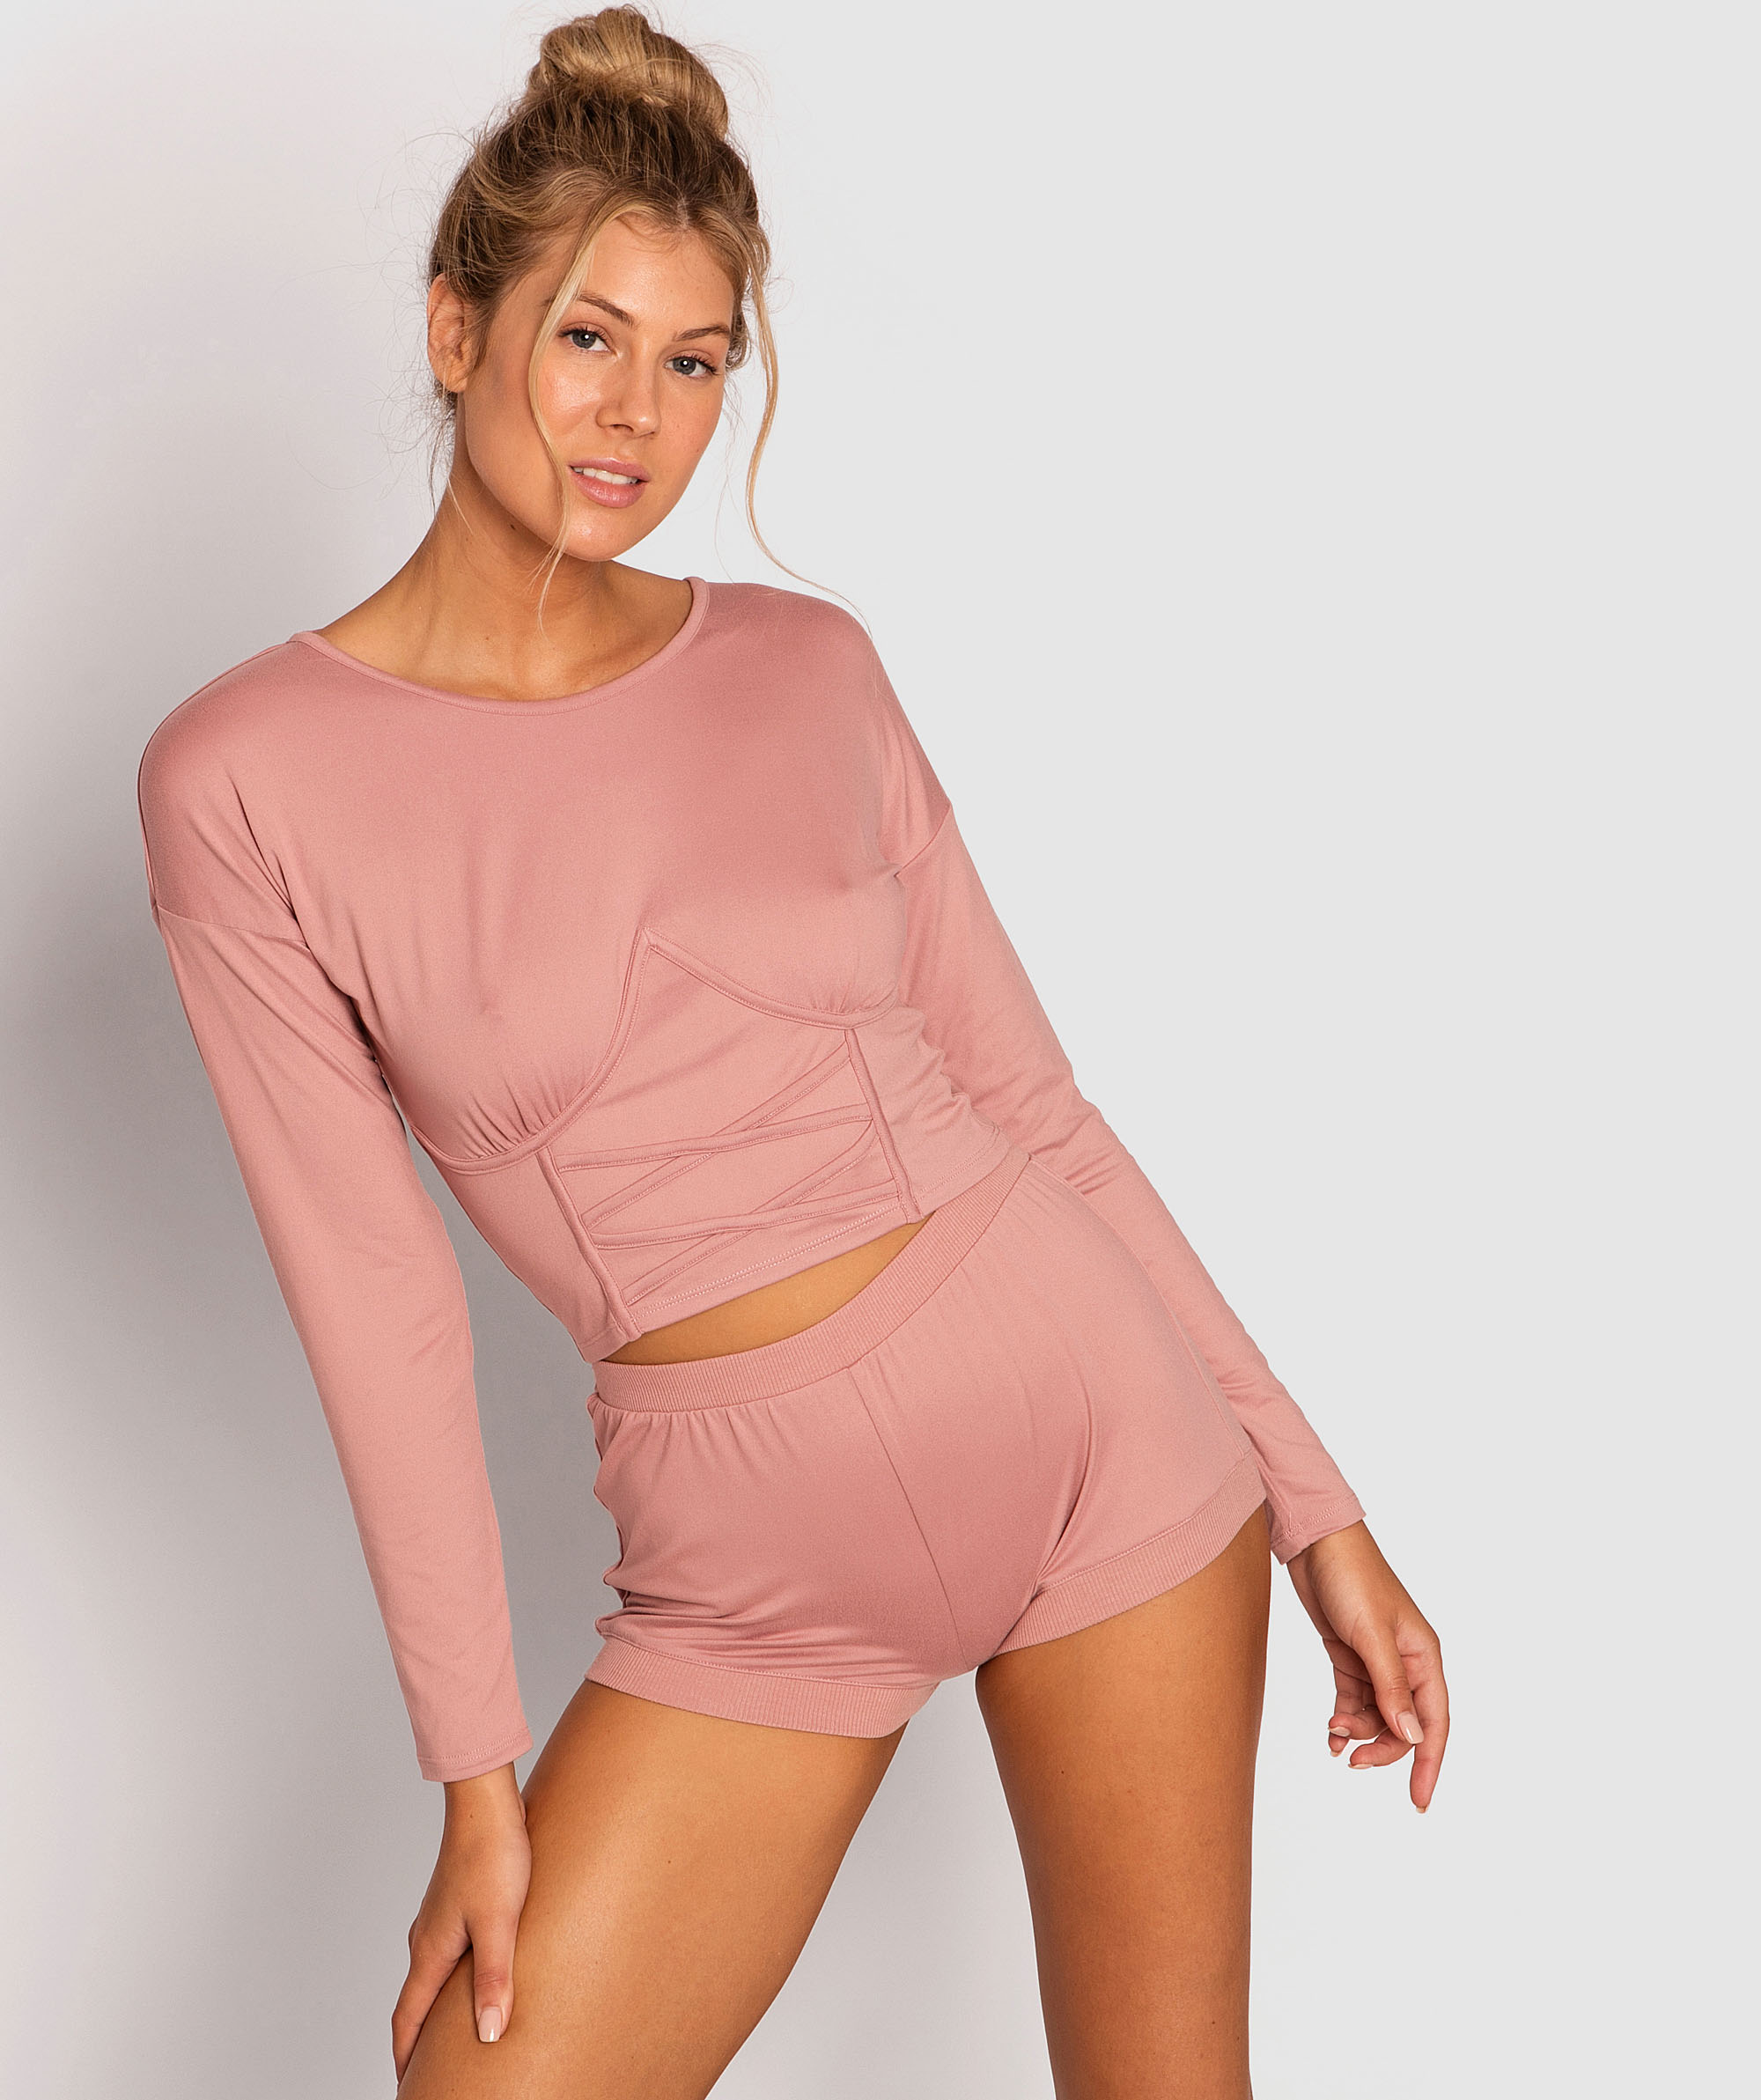 Style By Day Long Sleeve Corset - Pink